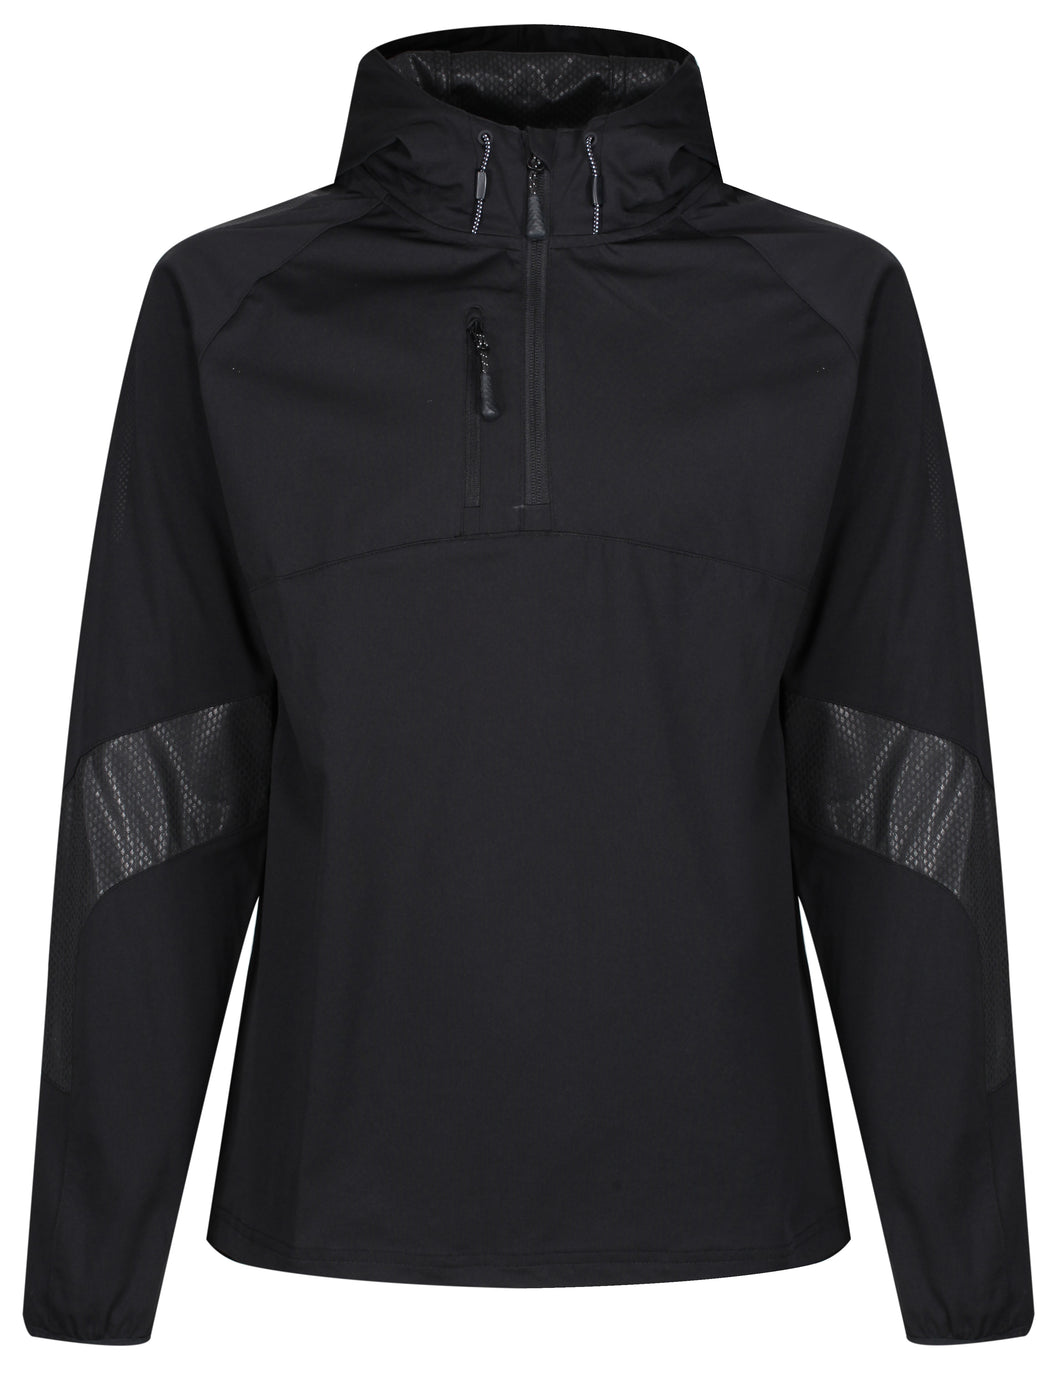 HSA Edge Pro Hooded Jacket